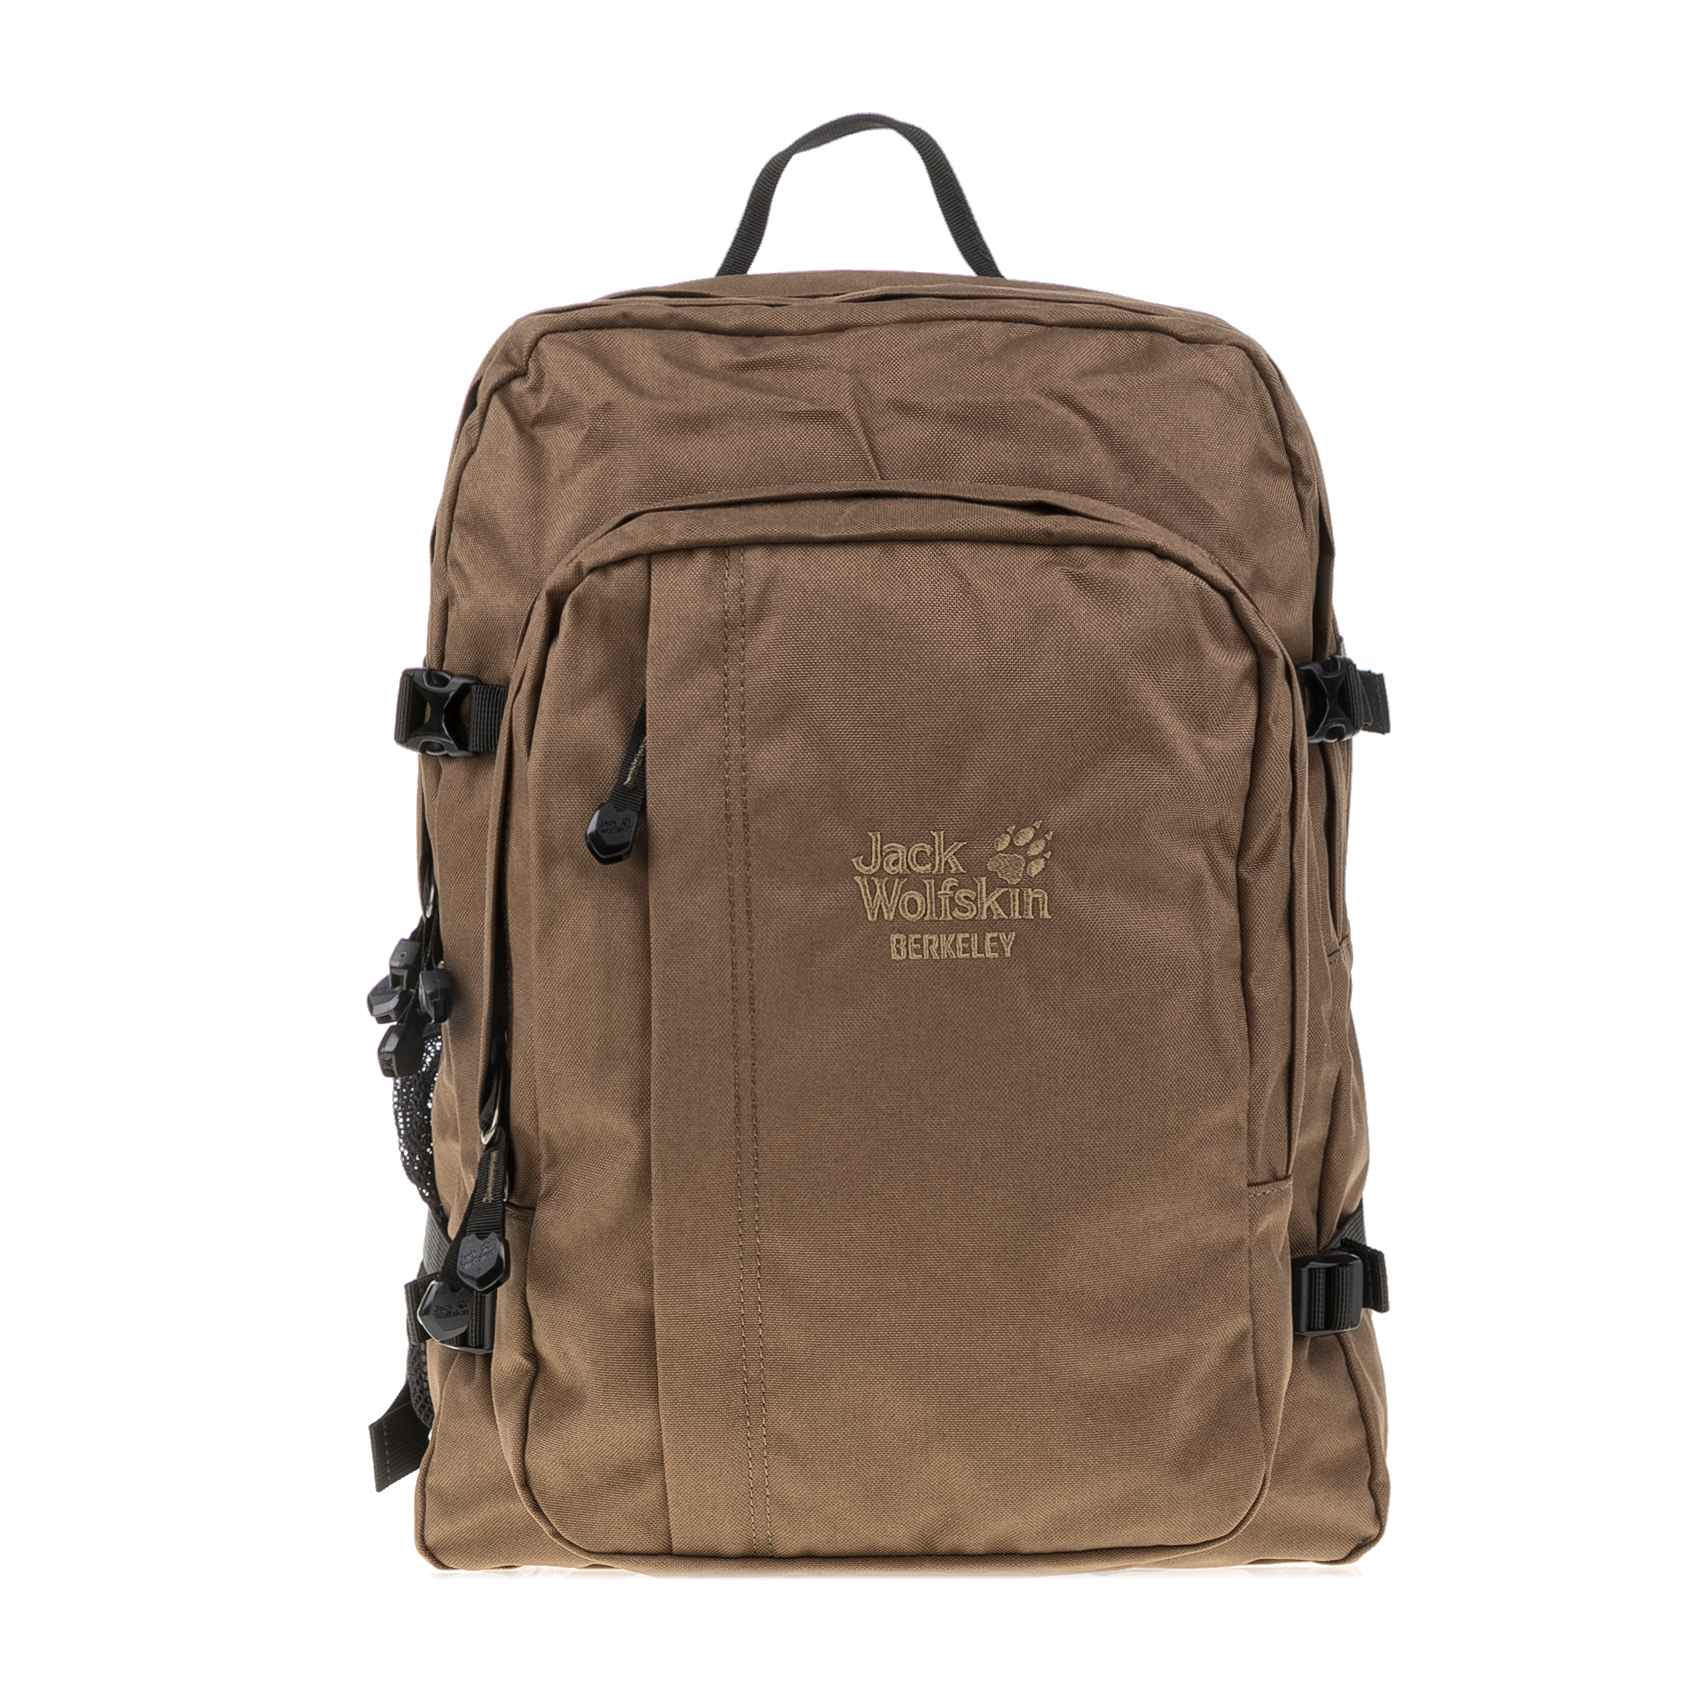 JACK WOLFSKIN – Σακίδιο πλάτης BERKELEY DAYPACK EQUIPMENT JACK WOLFSKIN καφέ 1635932.0-K100